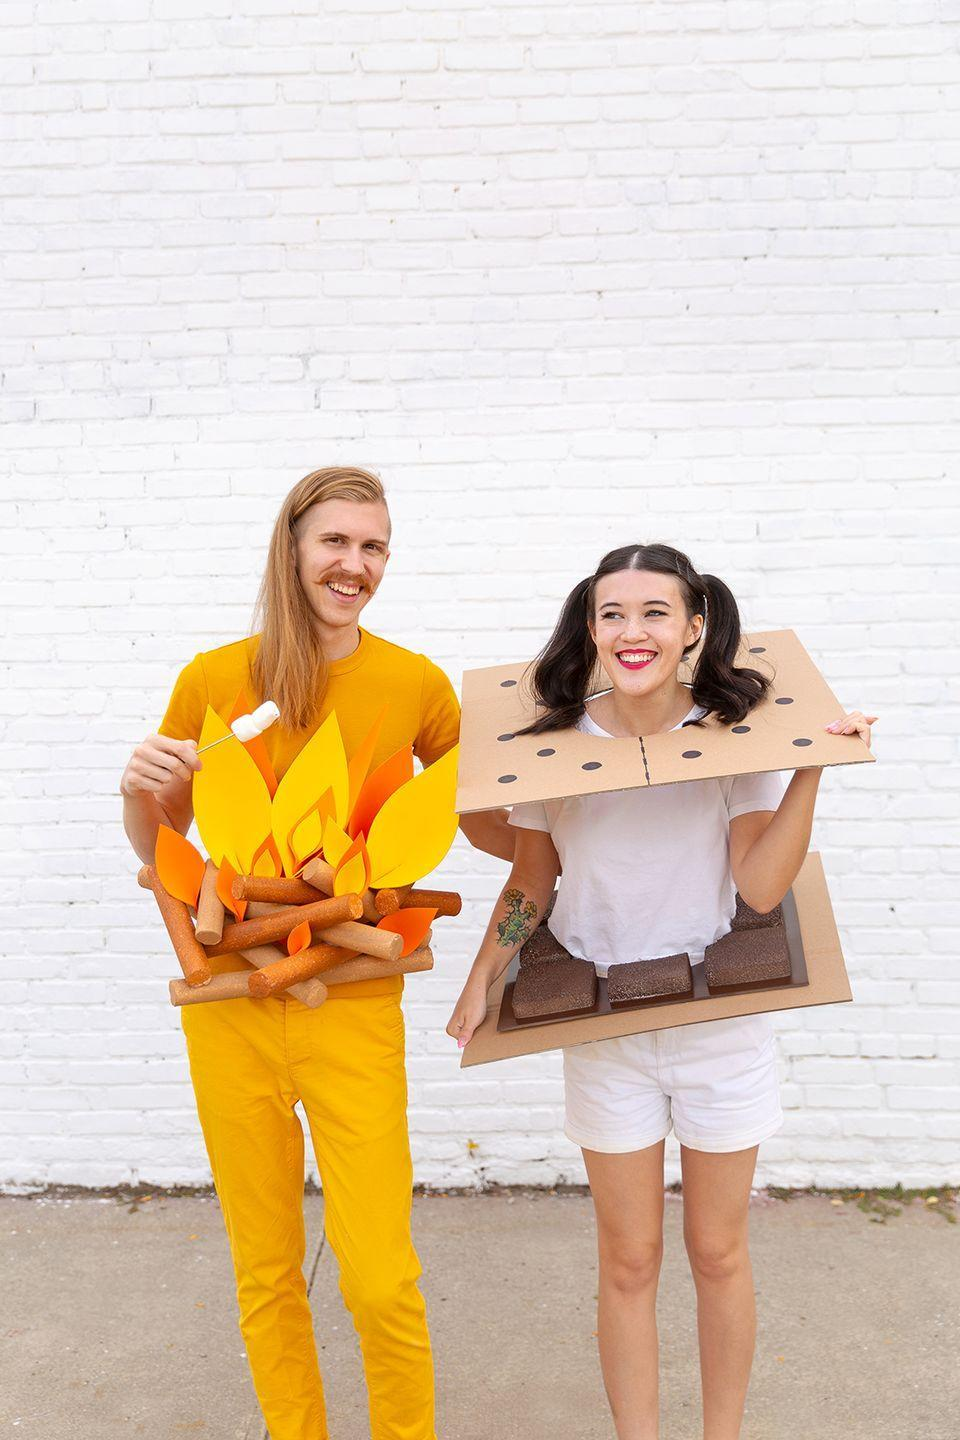 """<p>If you both love camping, or just want to be an iconic duo with your bestie, try this classic combo. </p><p><strong>Get the tutorial at <a href=""""http://www.awwsam.com/2018/10/diy-camp-couples-costumes.html"""" rel=""""nofollow noopener"""" target=""""_blank"""" data-ylk=""""slk:Aww Sam"""" class=""""link rapid-noclick-resp"""">Aww Sam</a>. </strong></p><p><strong><a class=""""link rapid-noclick-resp"""" href=""""https://www.amazon.com/Corrugated-Cardboard-Sheets-24-Pack-Inserts/dp/B079QRBBFP?tag=syn-yahoo-20&ascsubtag=%5Bartid%7C10050.g.21349110%5Bsrc%7Cyahoo-us"""" rel=""""nofollow noopener"""" target=""""_blank"""" data-ylk=""""slk:SHOP CARDBOARD"""">SHOP CARDBOARD</a><br></strong></p>"""